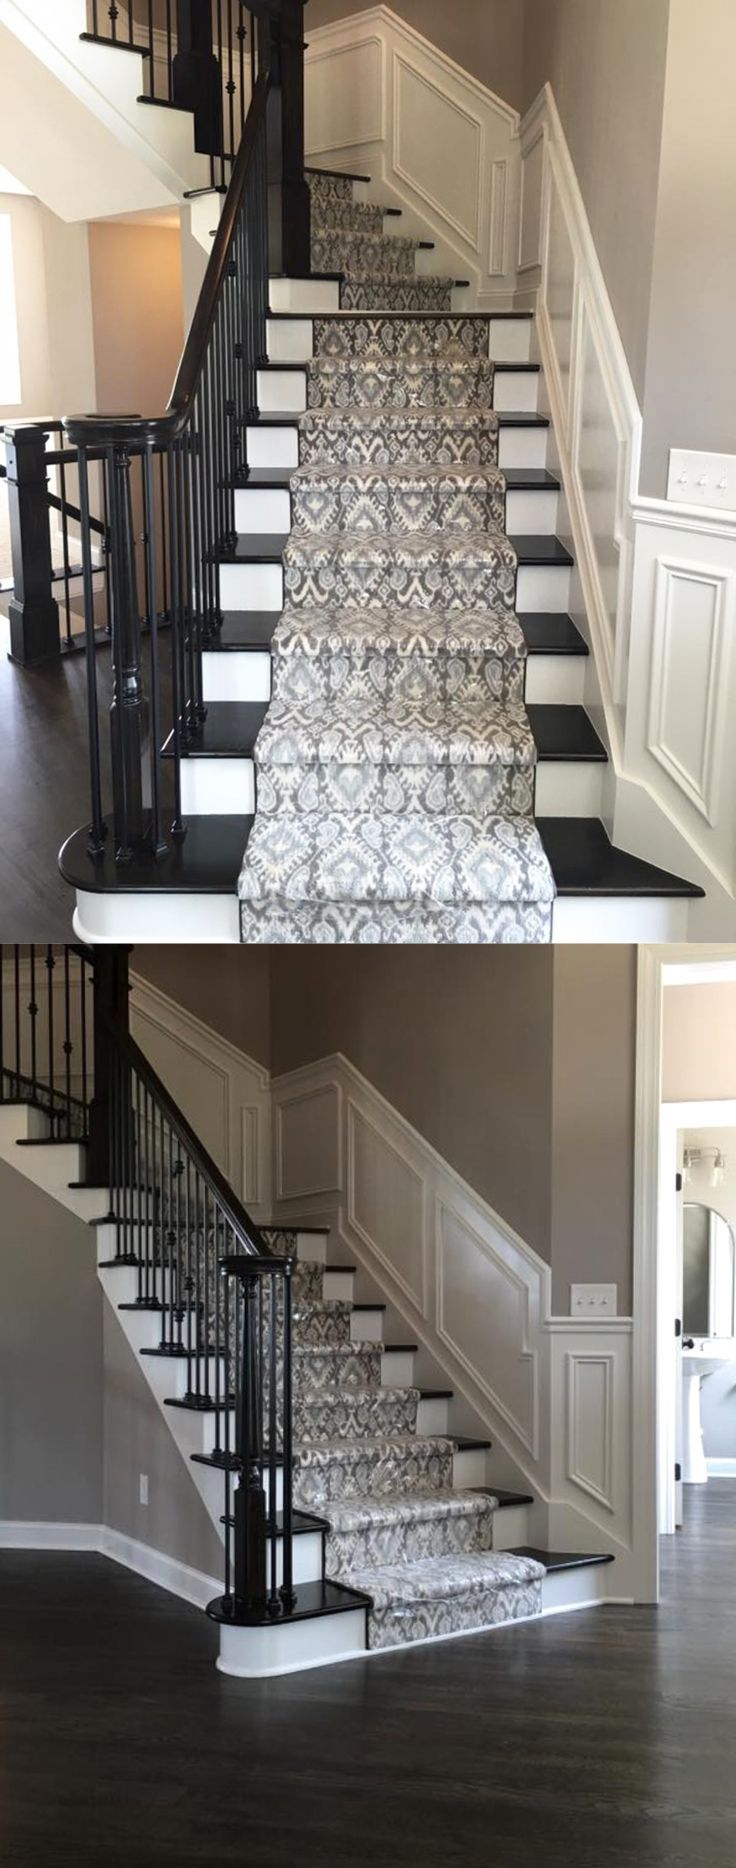 Best 422 Best Stair Runners Images On Pinterest Sweet Home 400 x 300